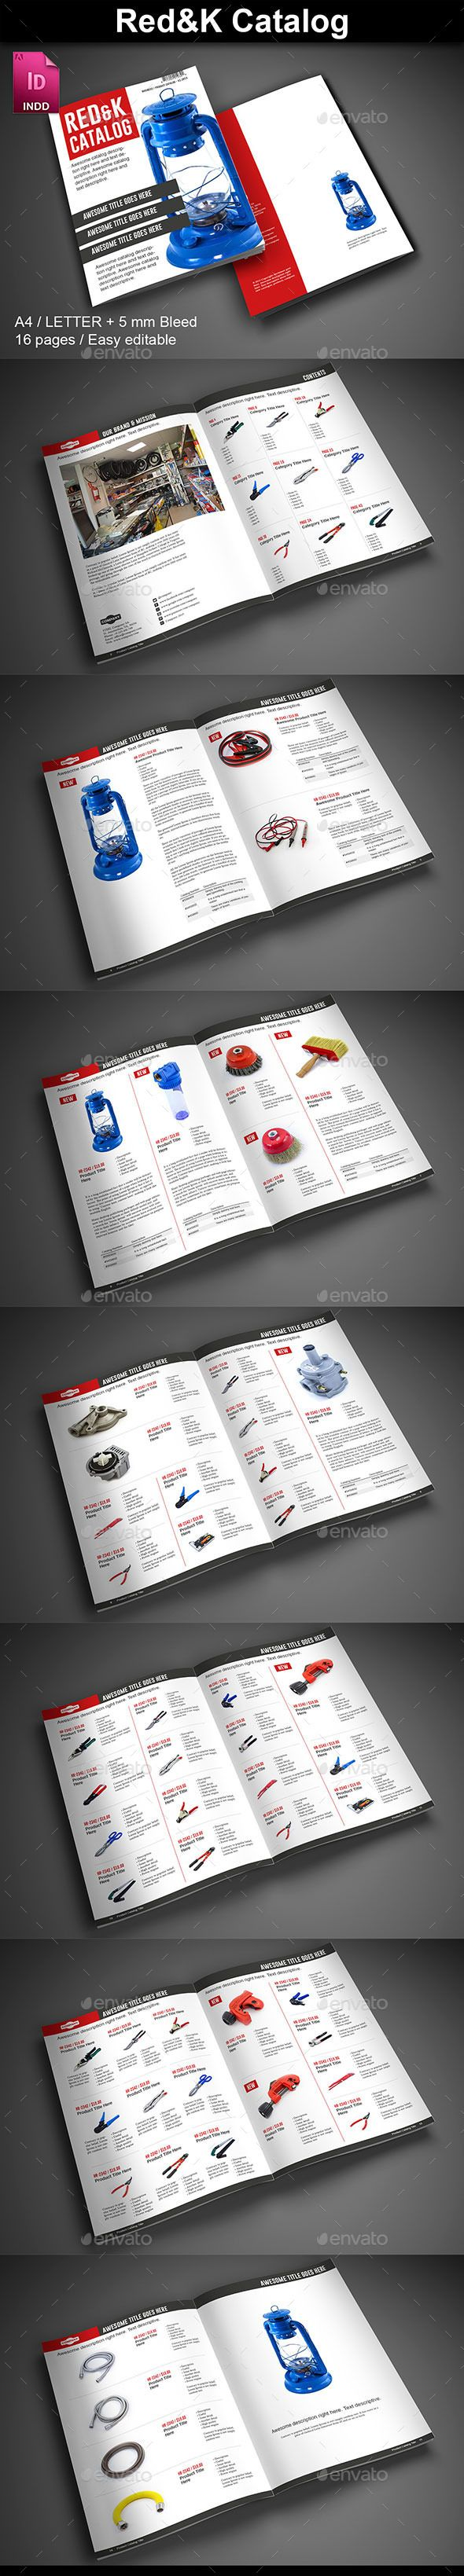 Red & K Product Catalog - Catalogs Brochures